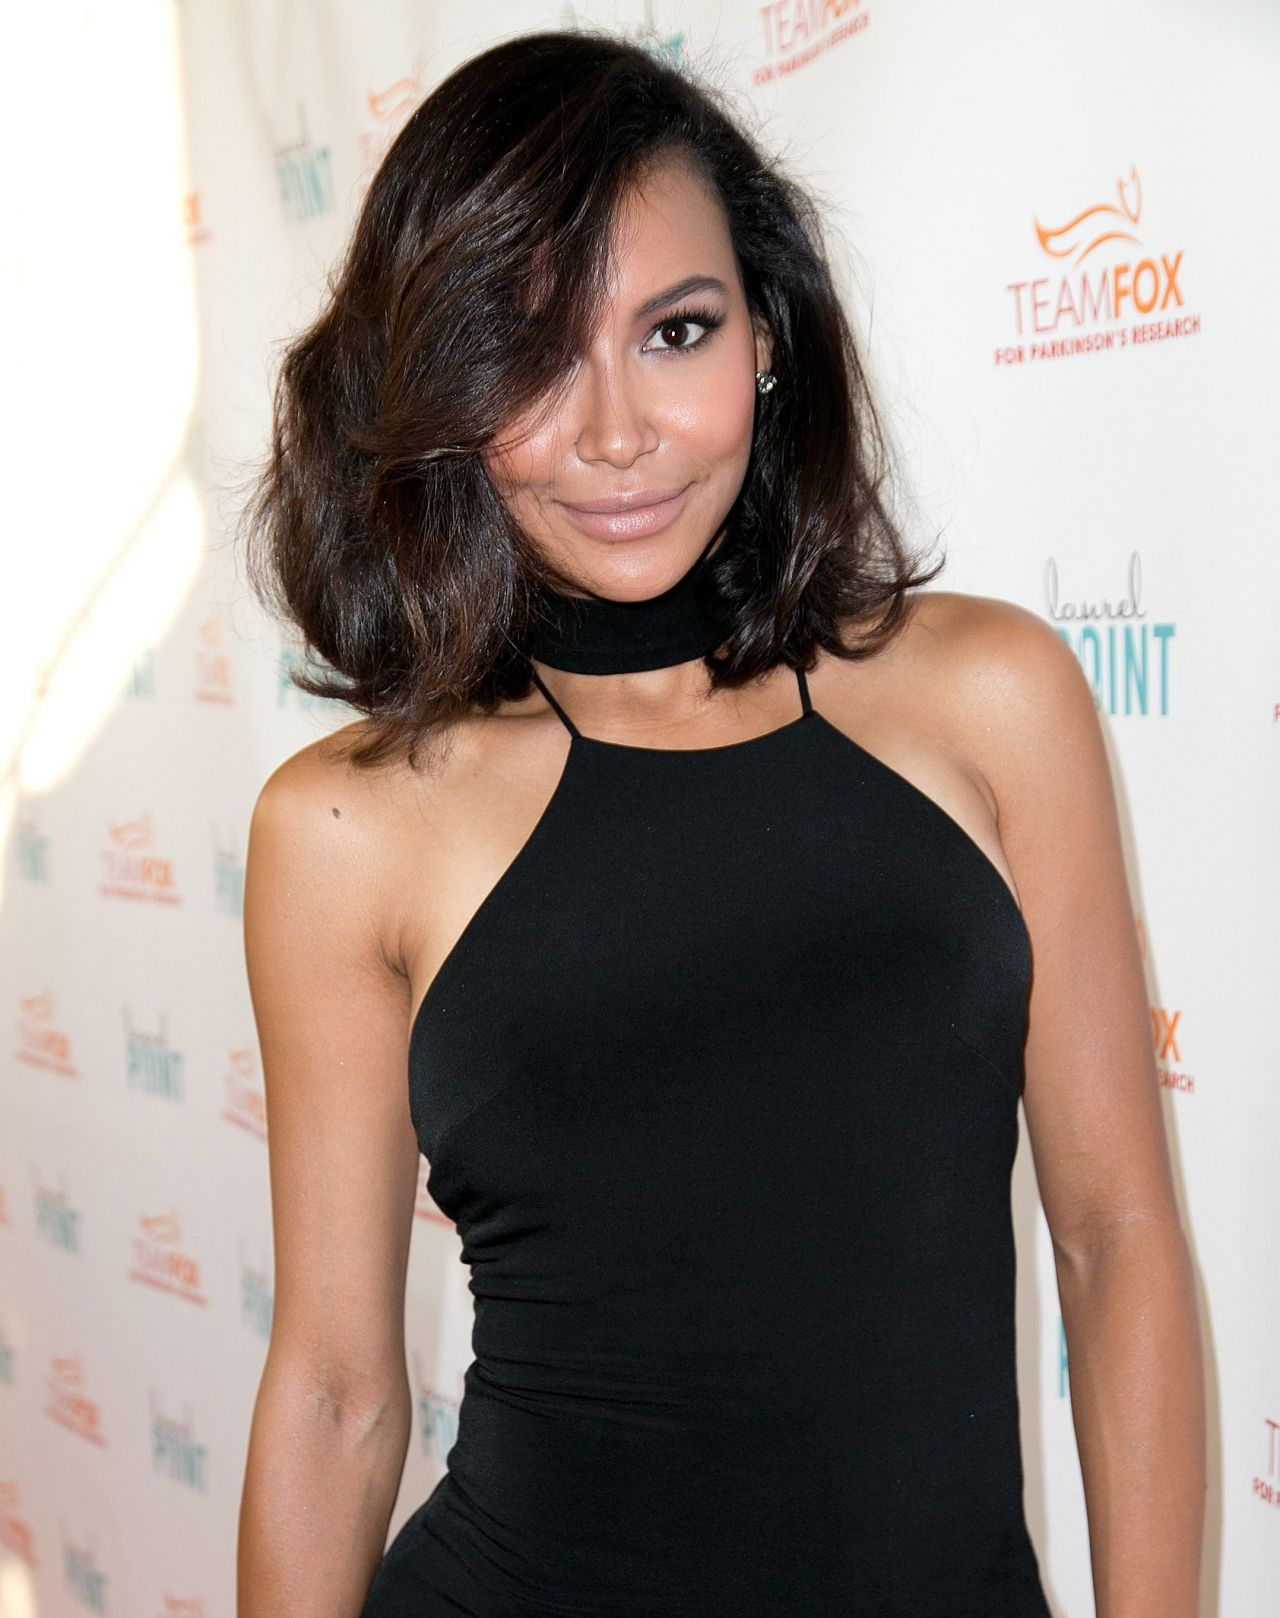 A >> Naya Rivera - 'Raising The Bar to End Parkinsons' Fundraiser in Los Angeles 7/27/2016